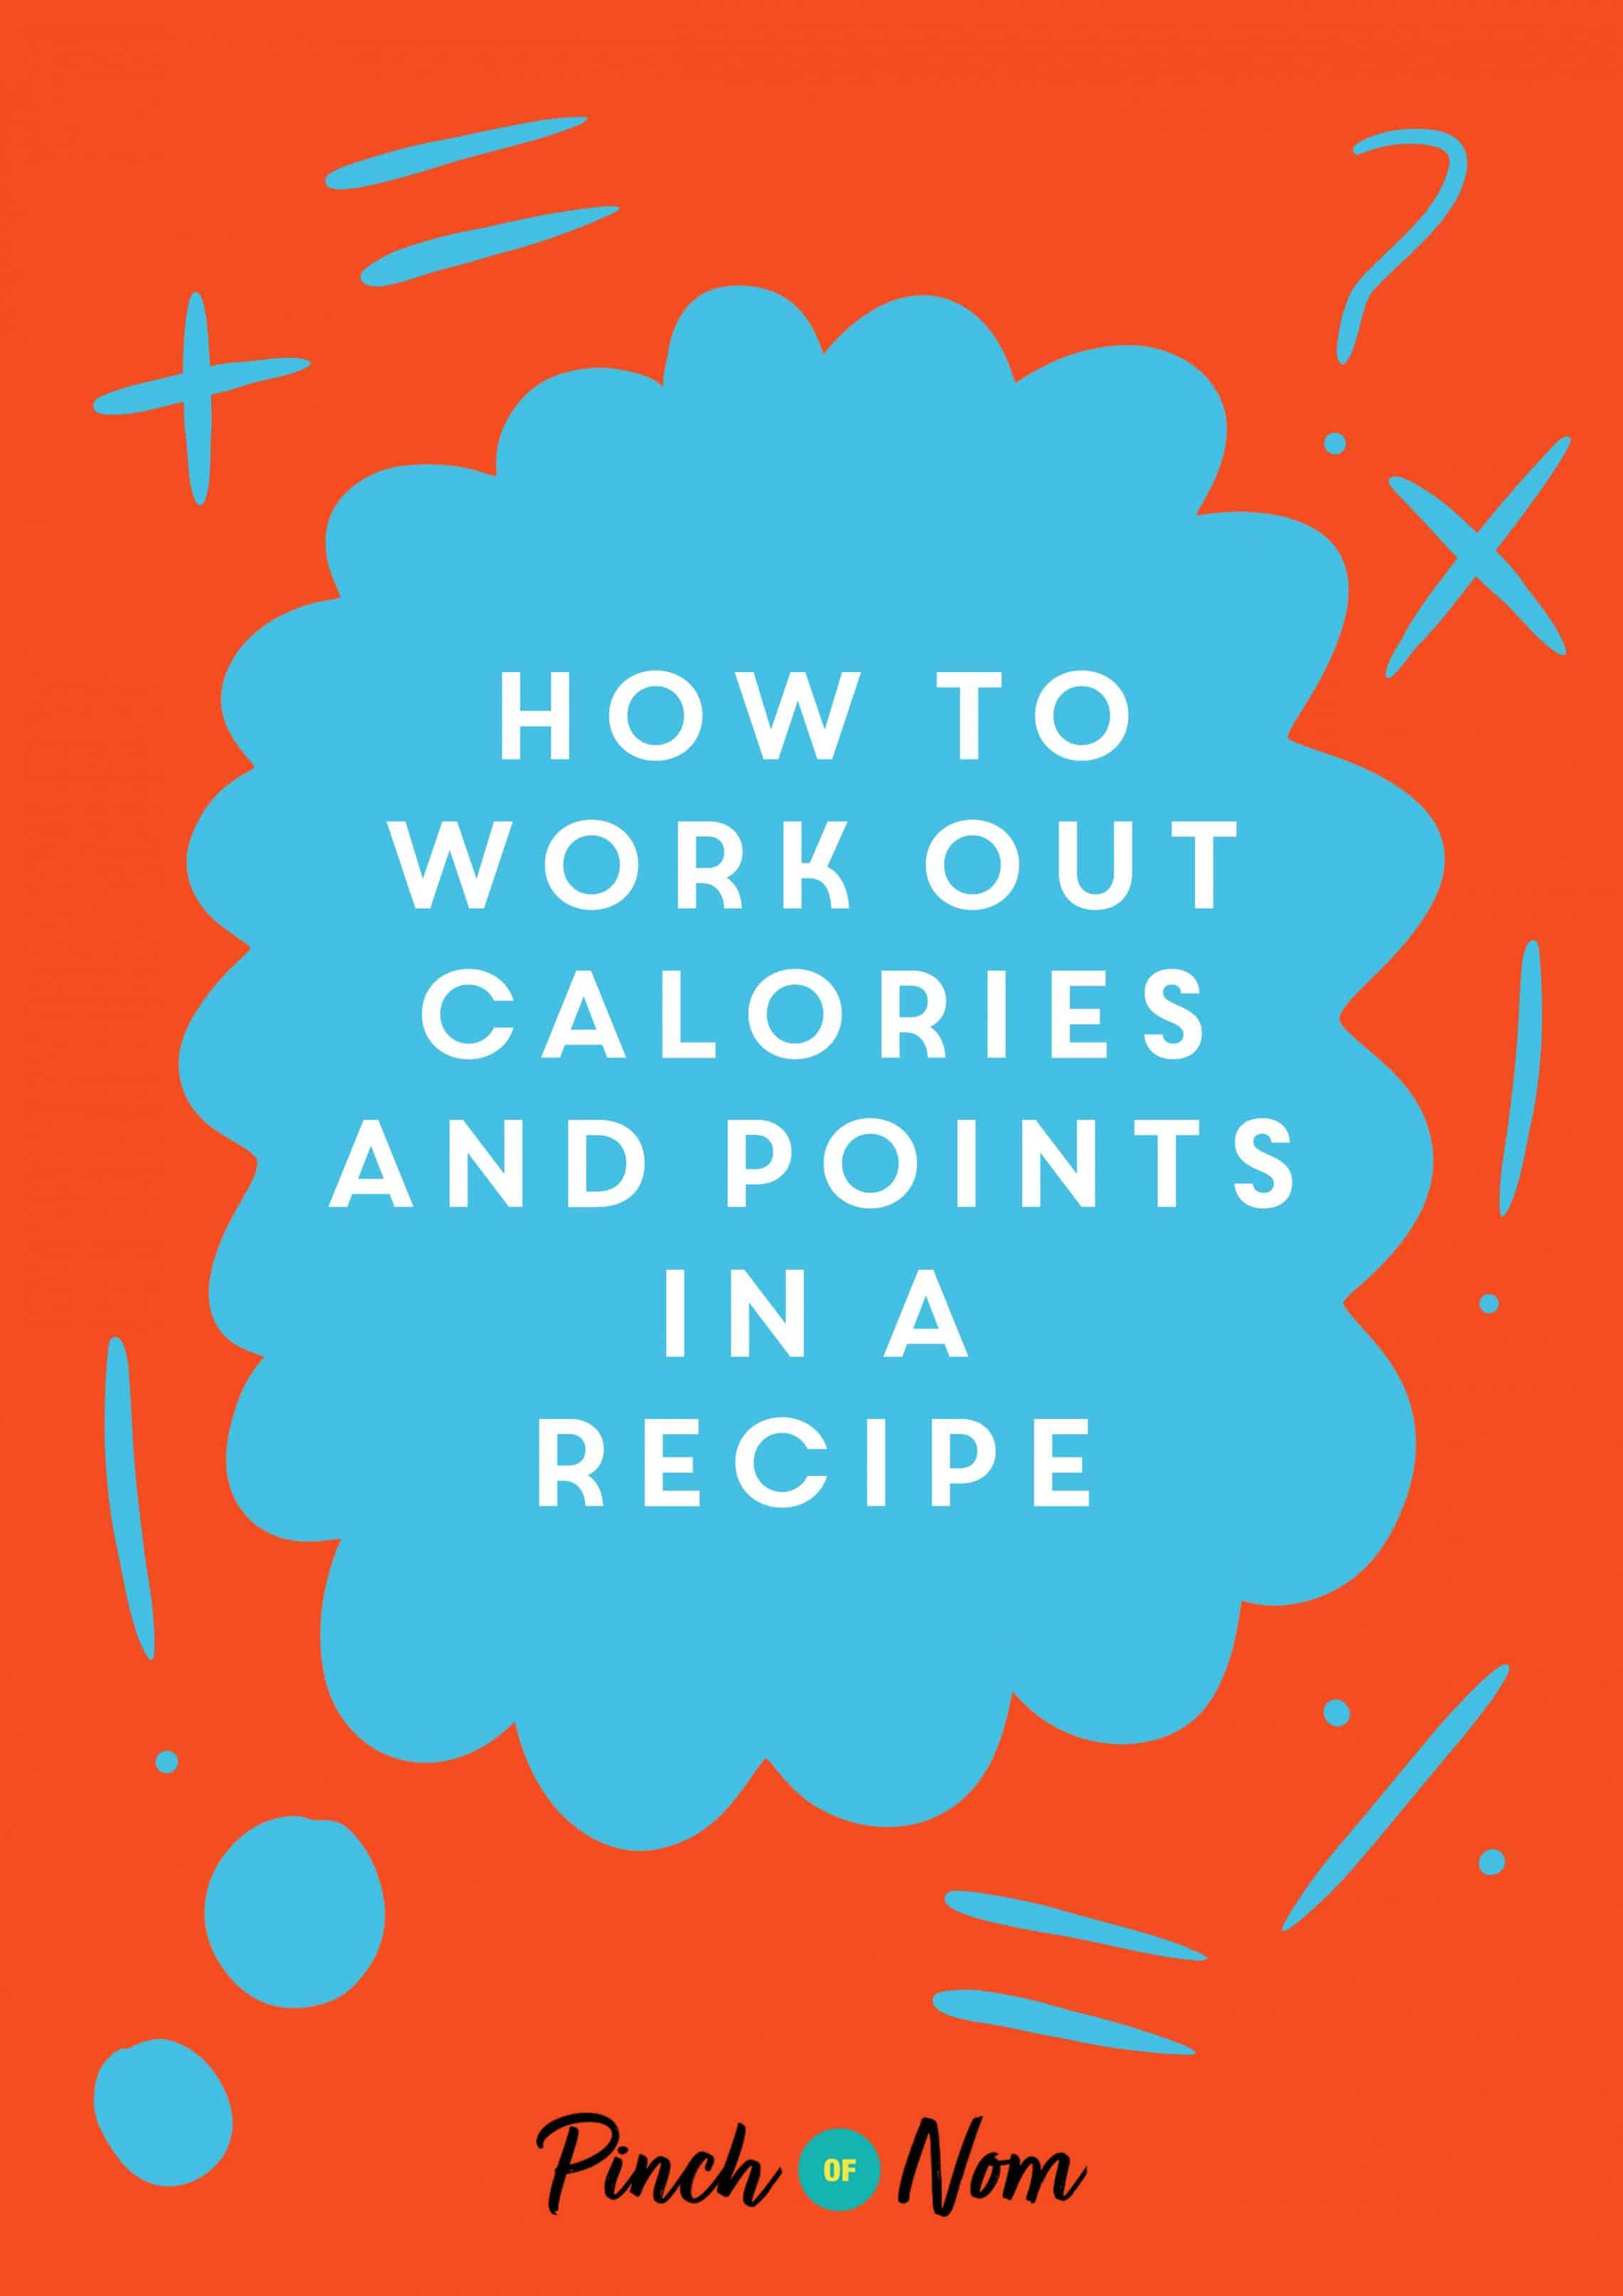 How to work out calories and points in a recipe